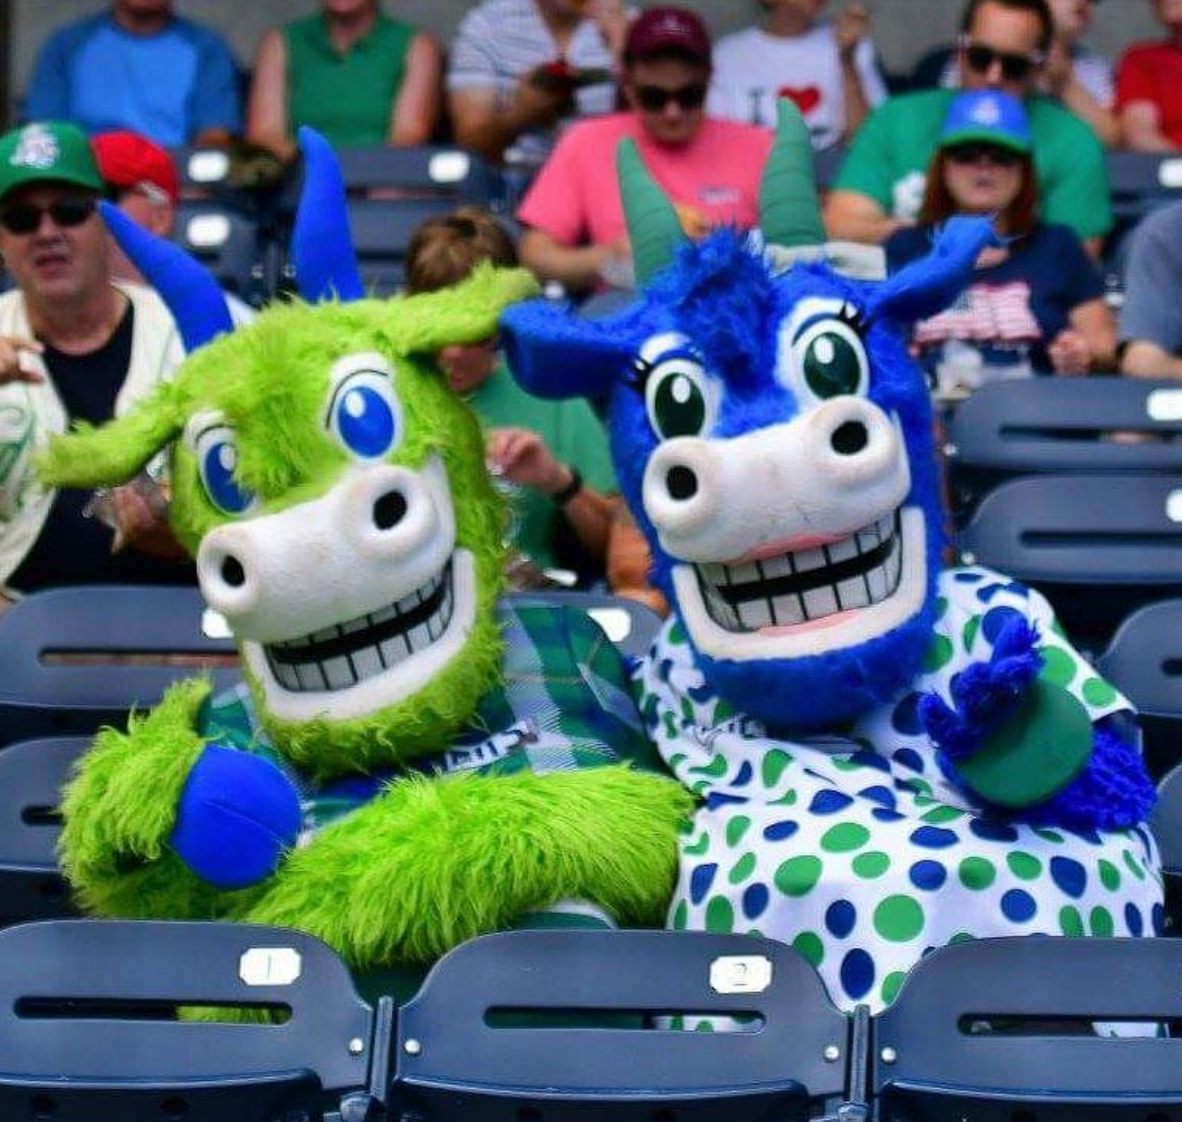 Chompers and Chew Chew, the Hartford Yard Goats mascots